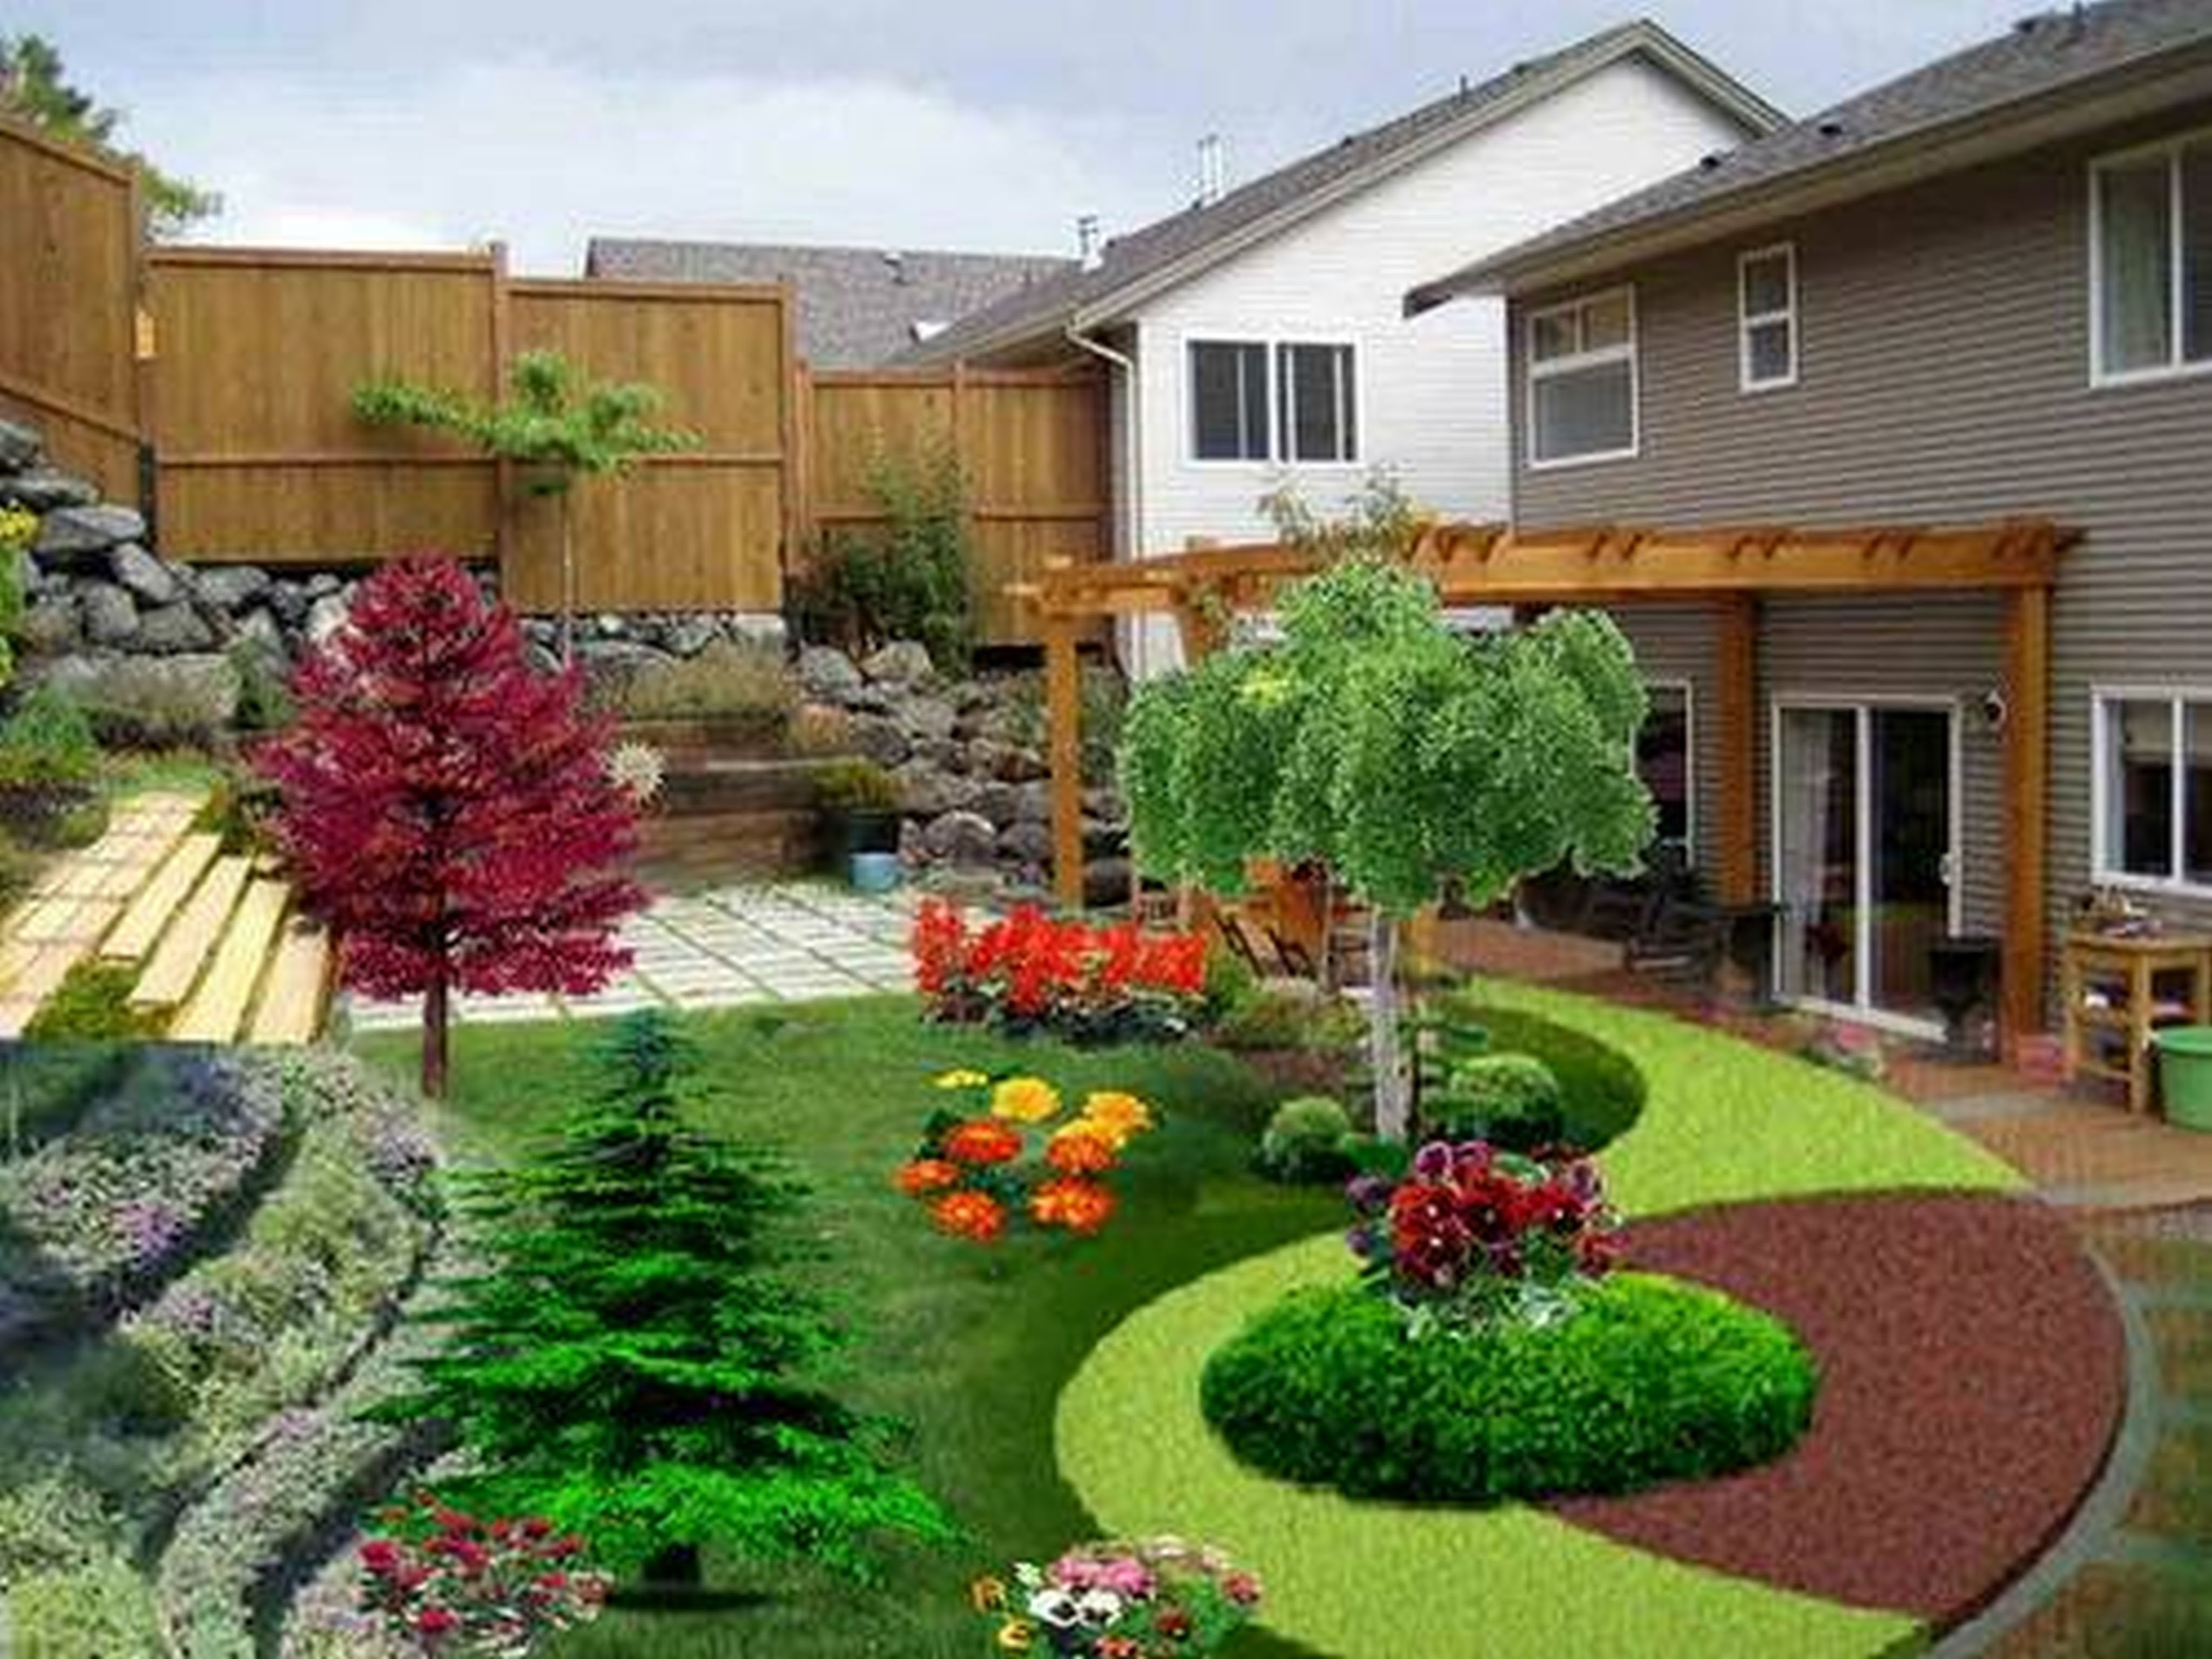 10 Great Landscaping Ideas For Front Of House tips for front yard landscaping ideas front house garden design 2020